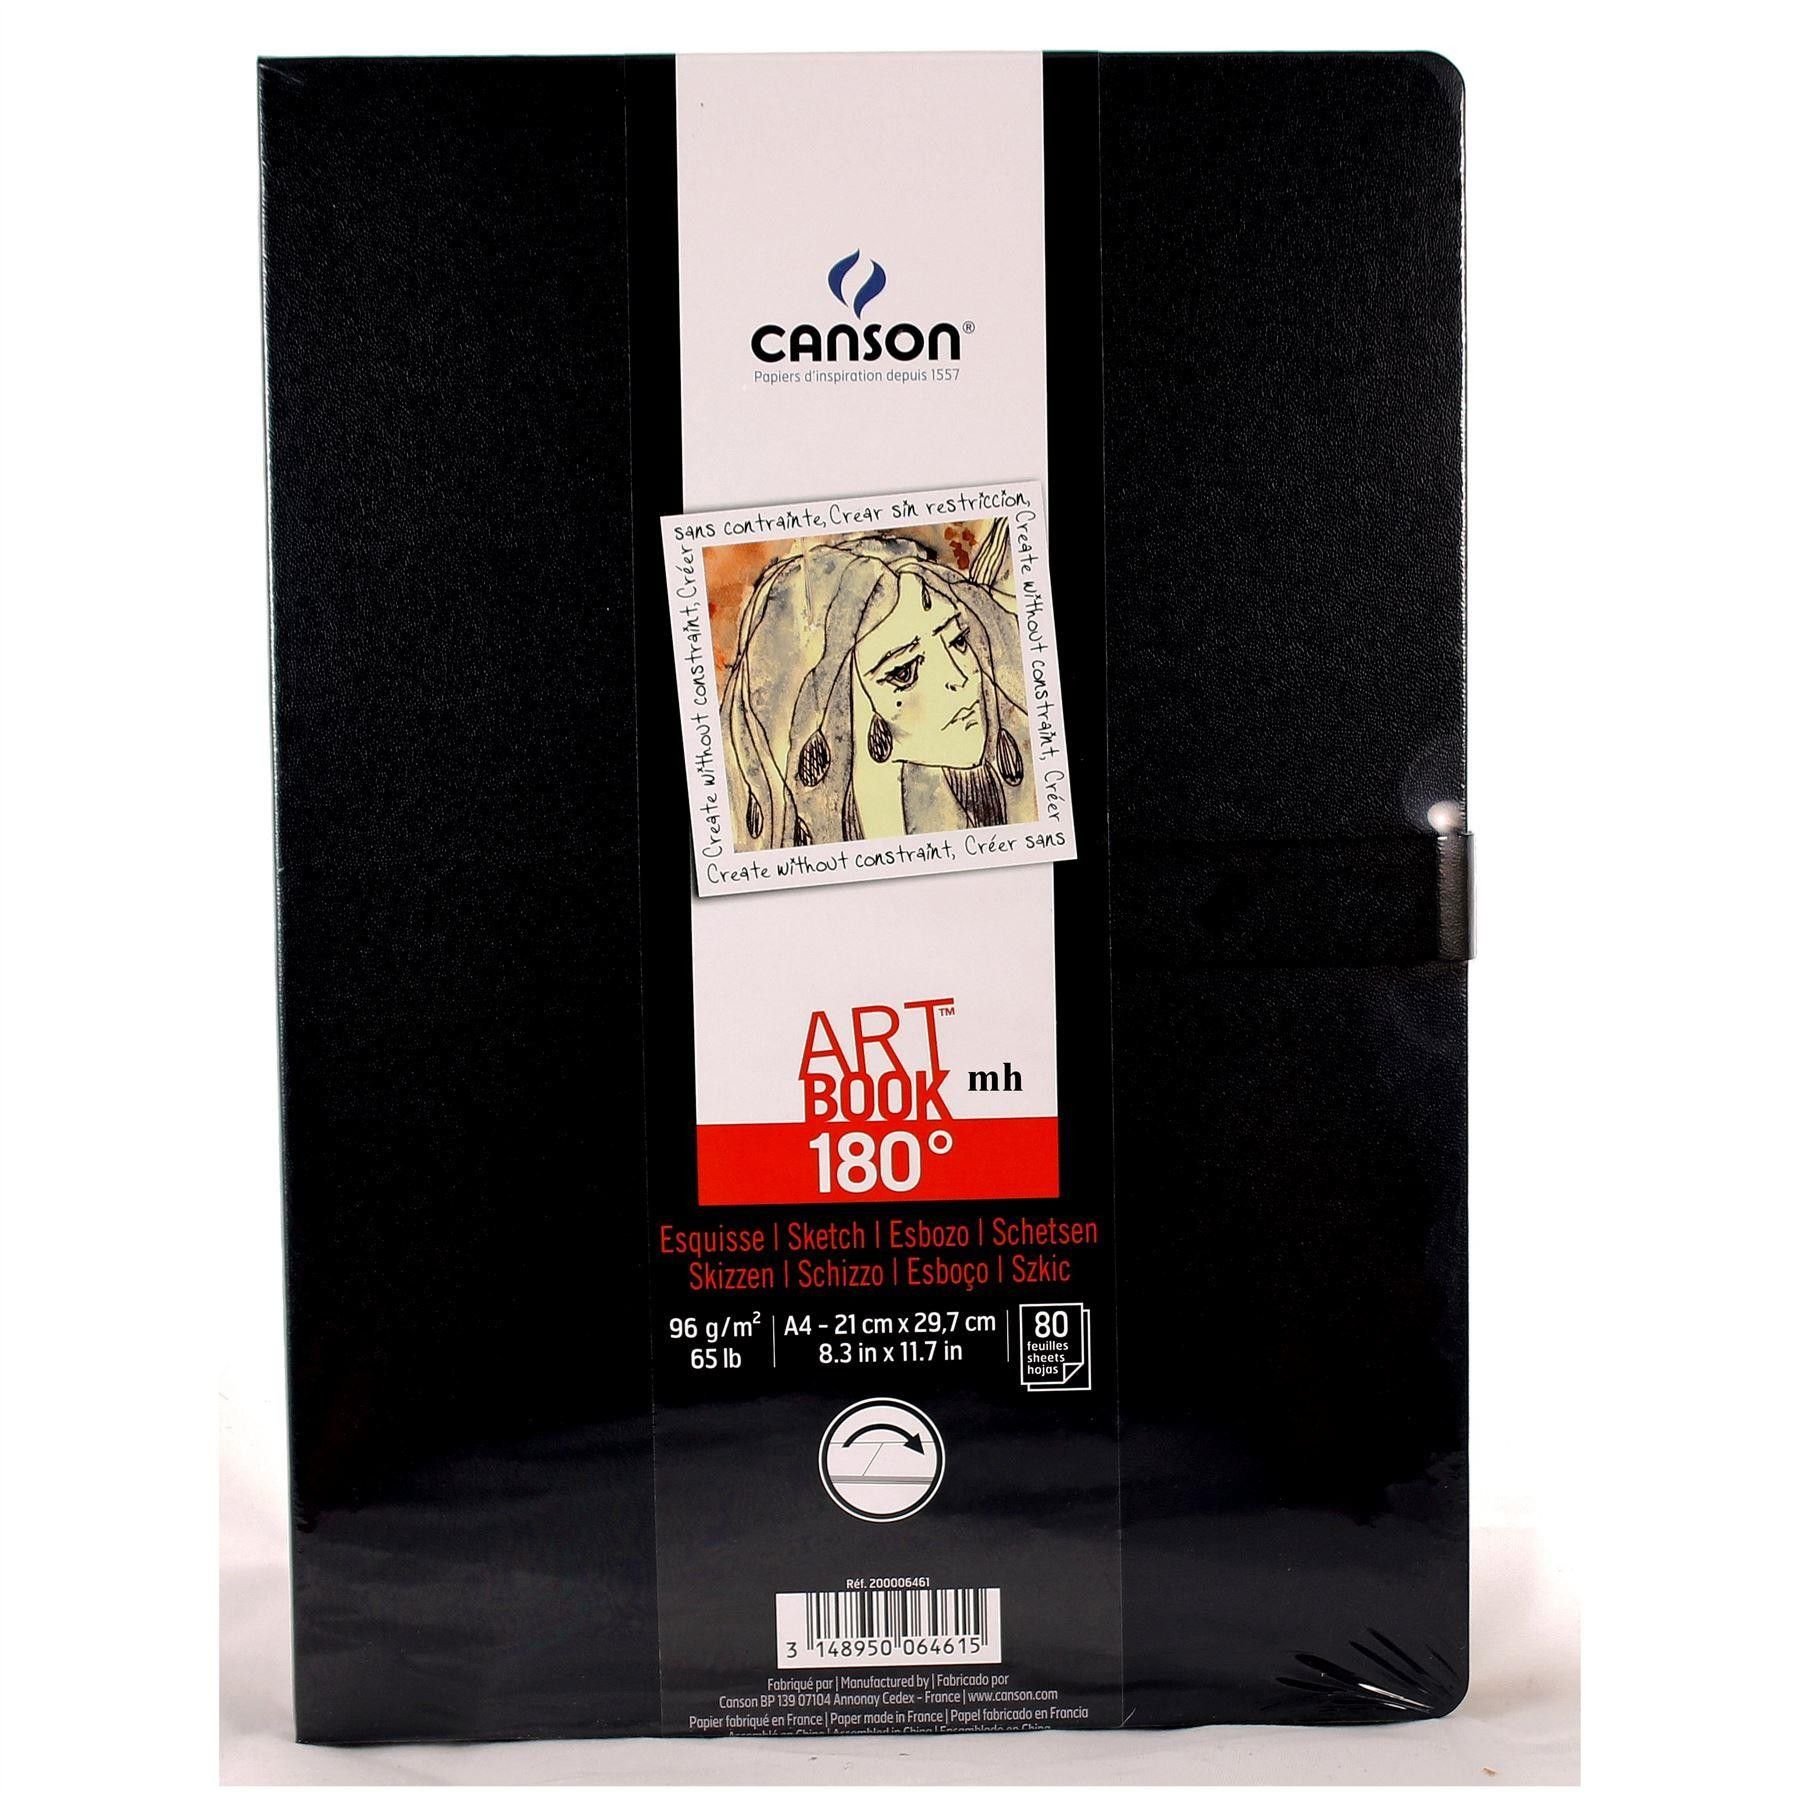 Canson 180 Sketchbooks 96gsm 80 Sheets Light Textureed Surface